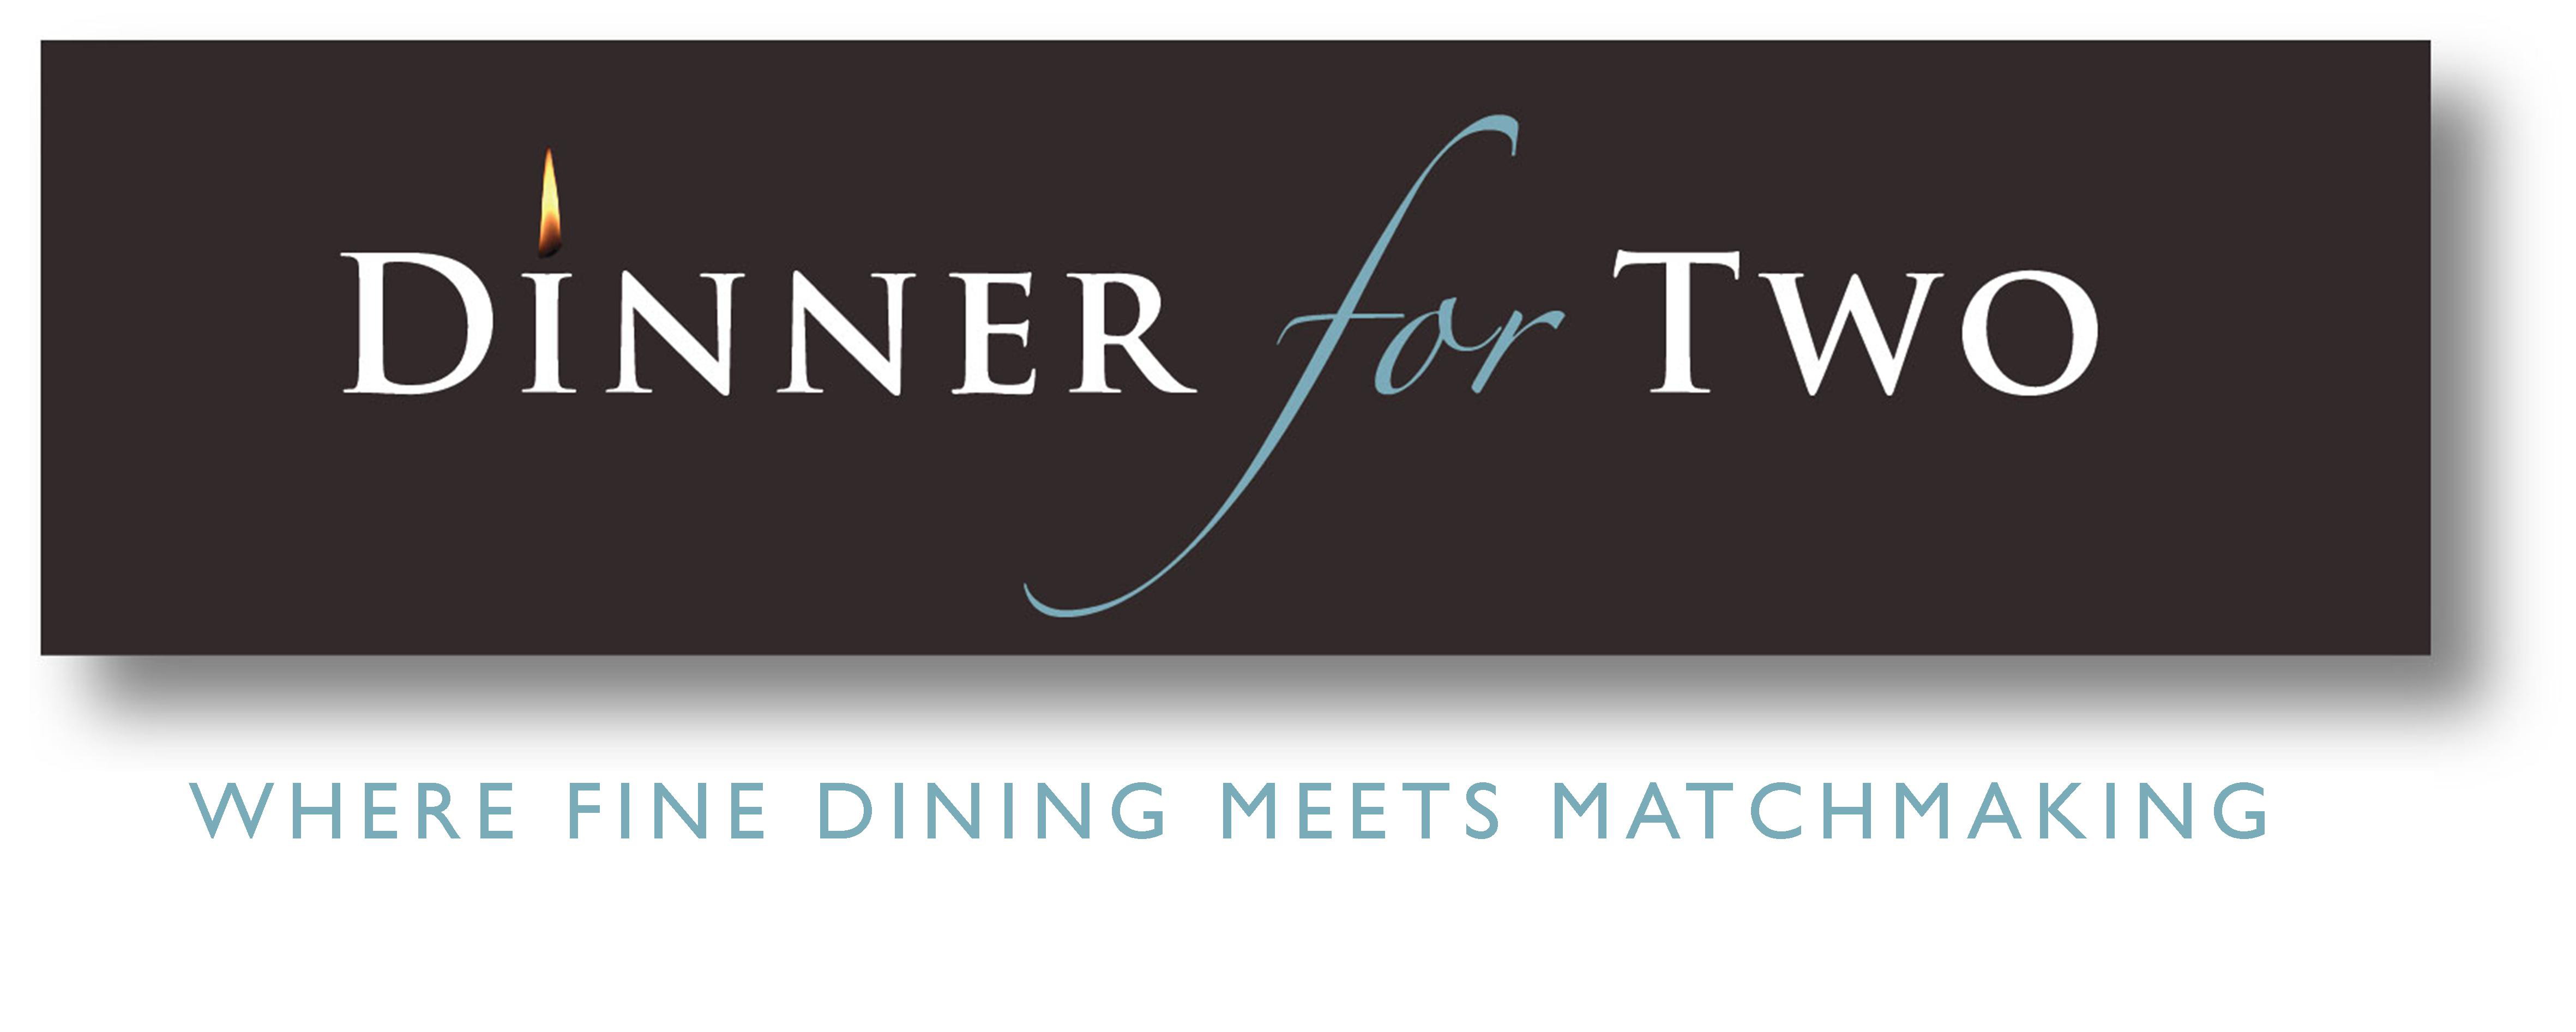 Dinner for two - fine dining matchmaking experience, executive introduction agency